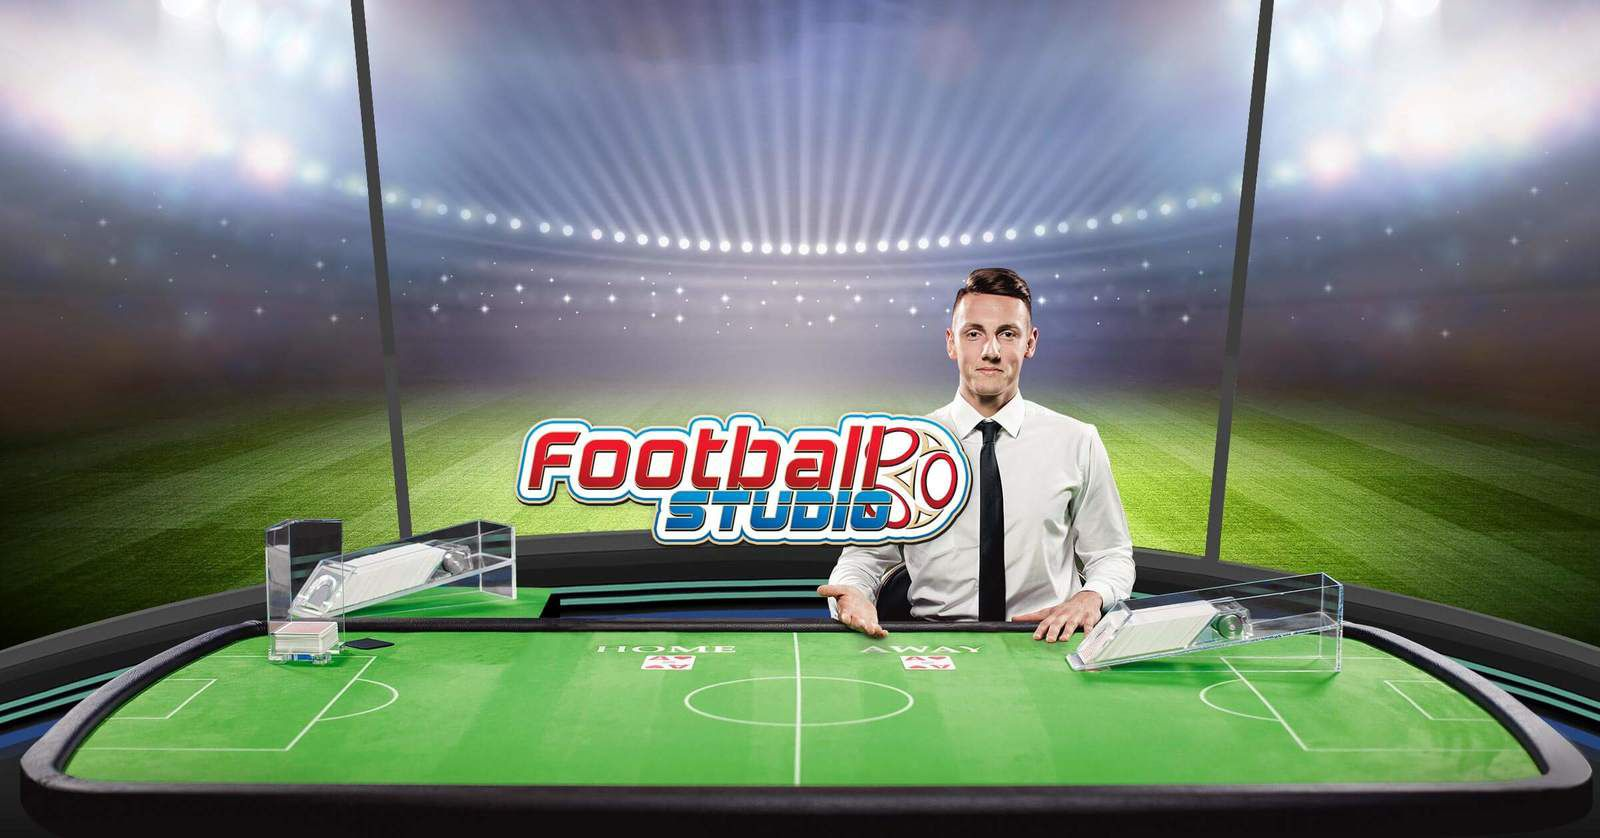 jeu de casino en ligne live - Football Studio développeur Evolution Gaming